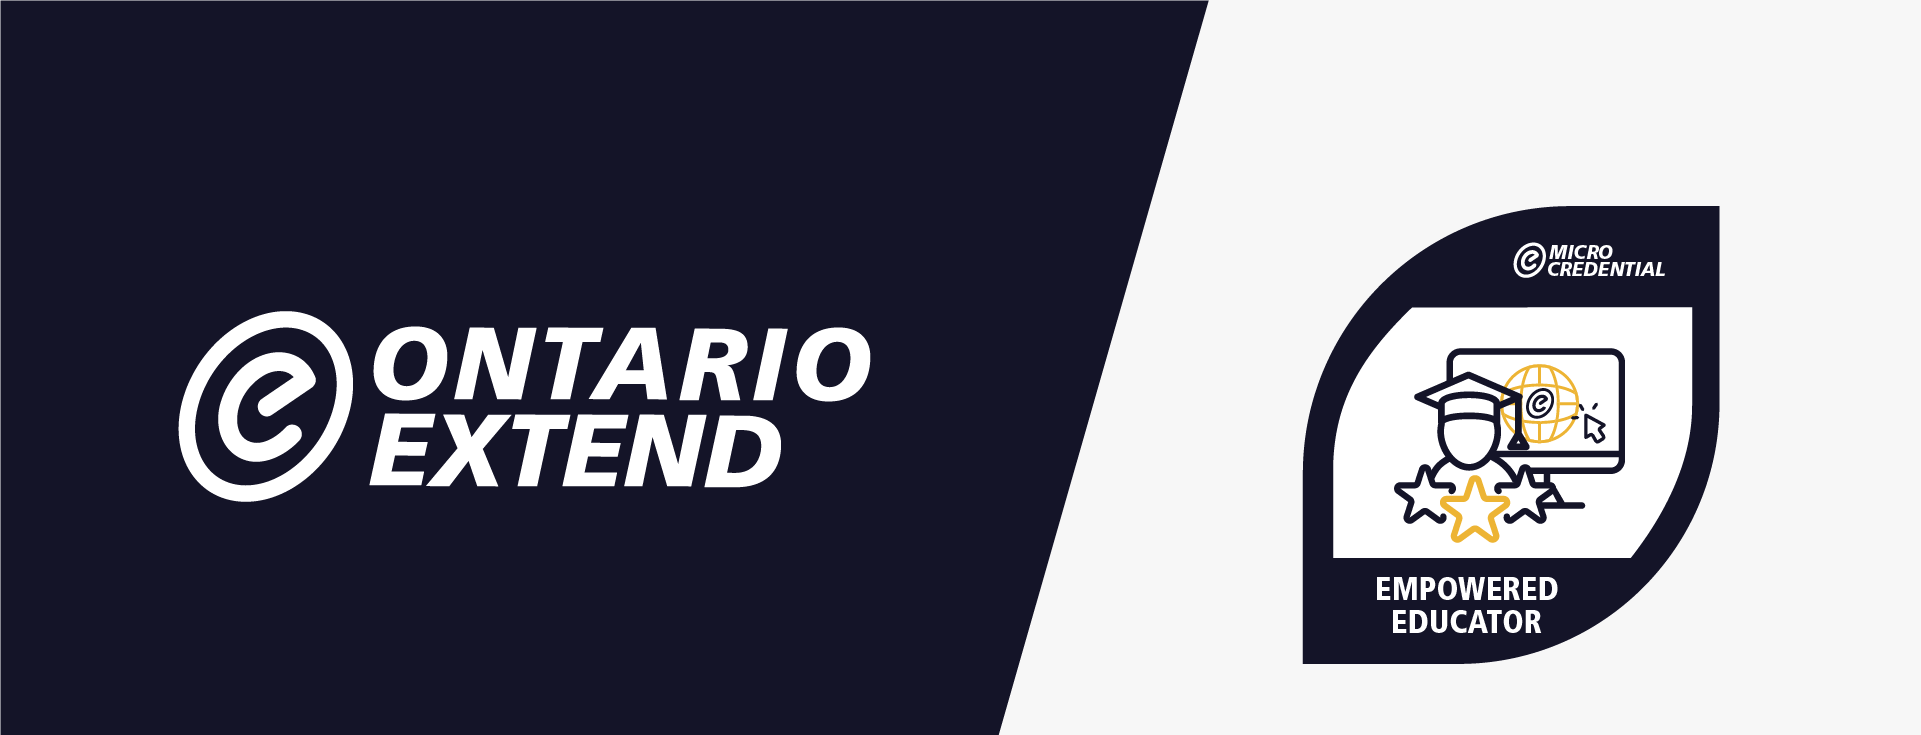 Ontario Extend logo with a micro-credential